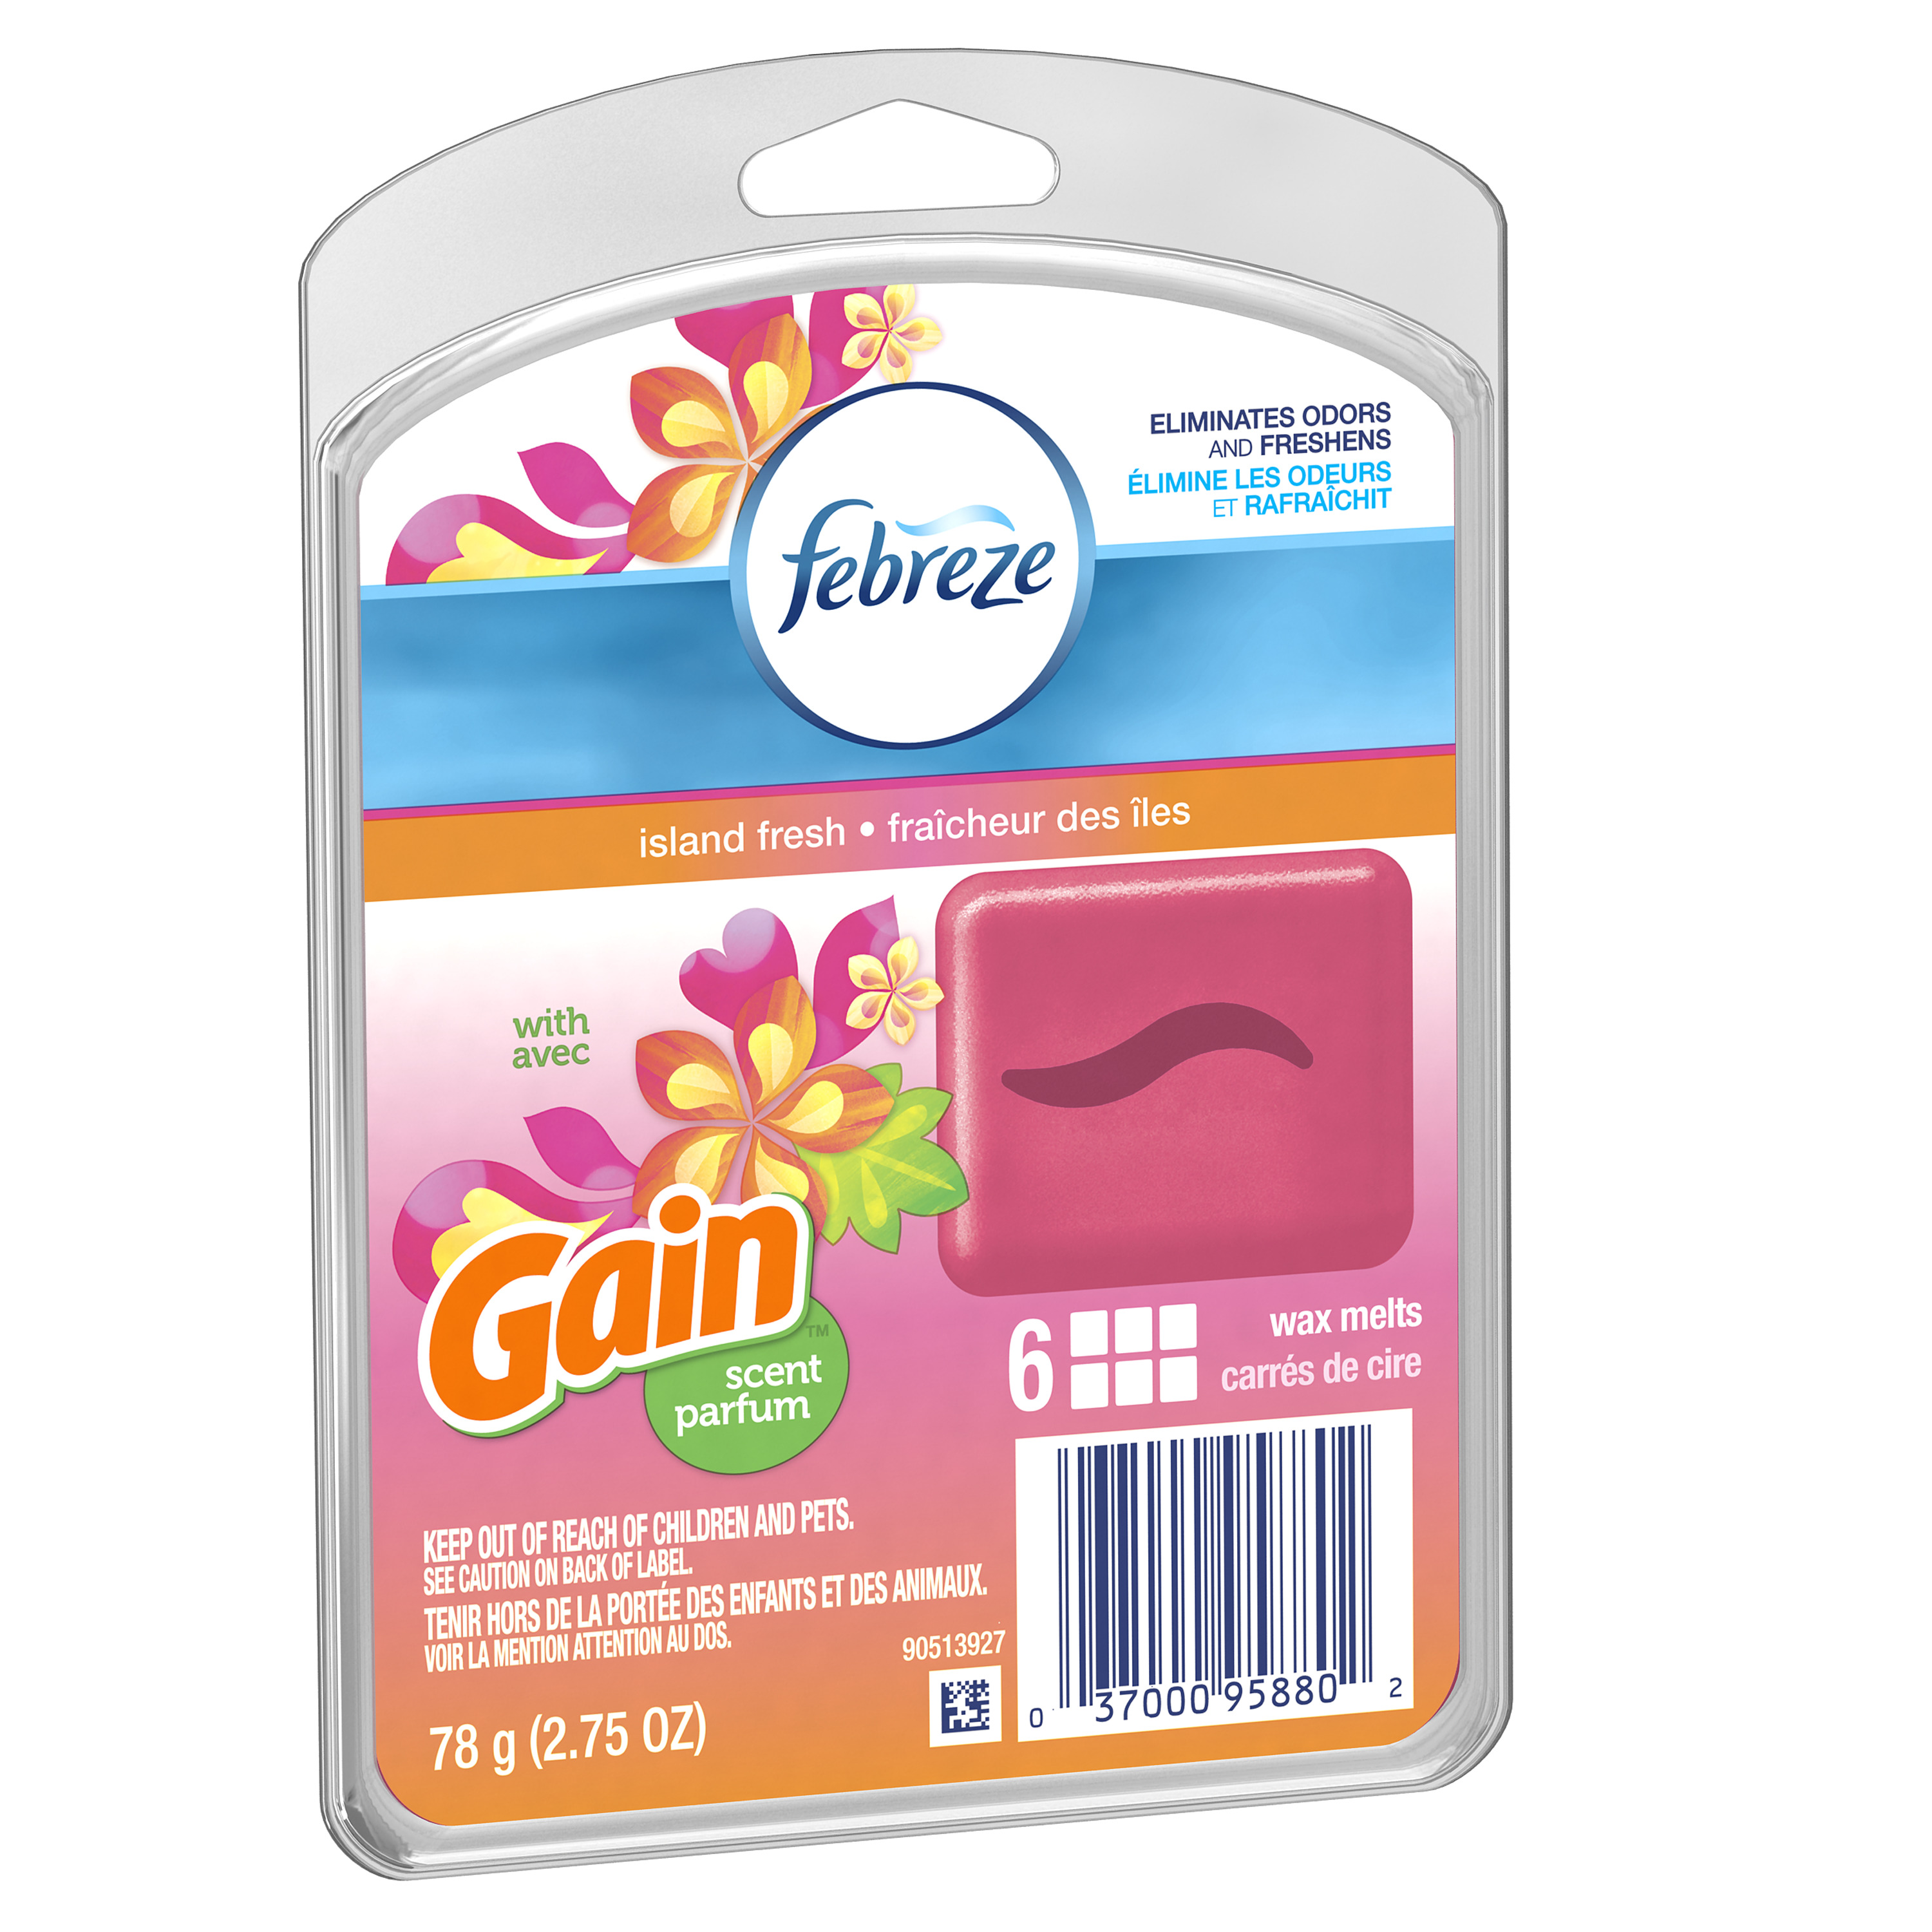 Febreze WAX MELTS Air Freshener with Gain Island Fresh (1 Count, 2.75 oz)